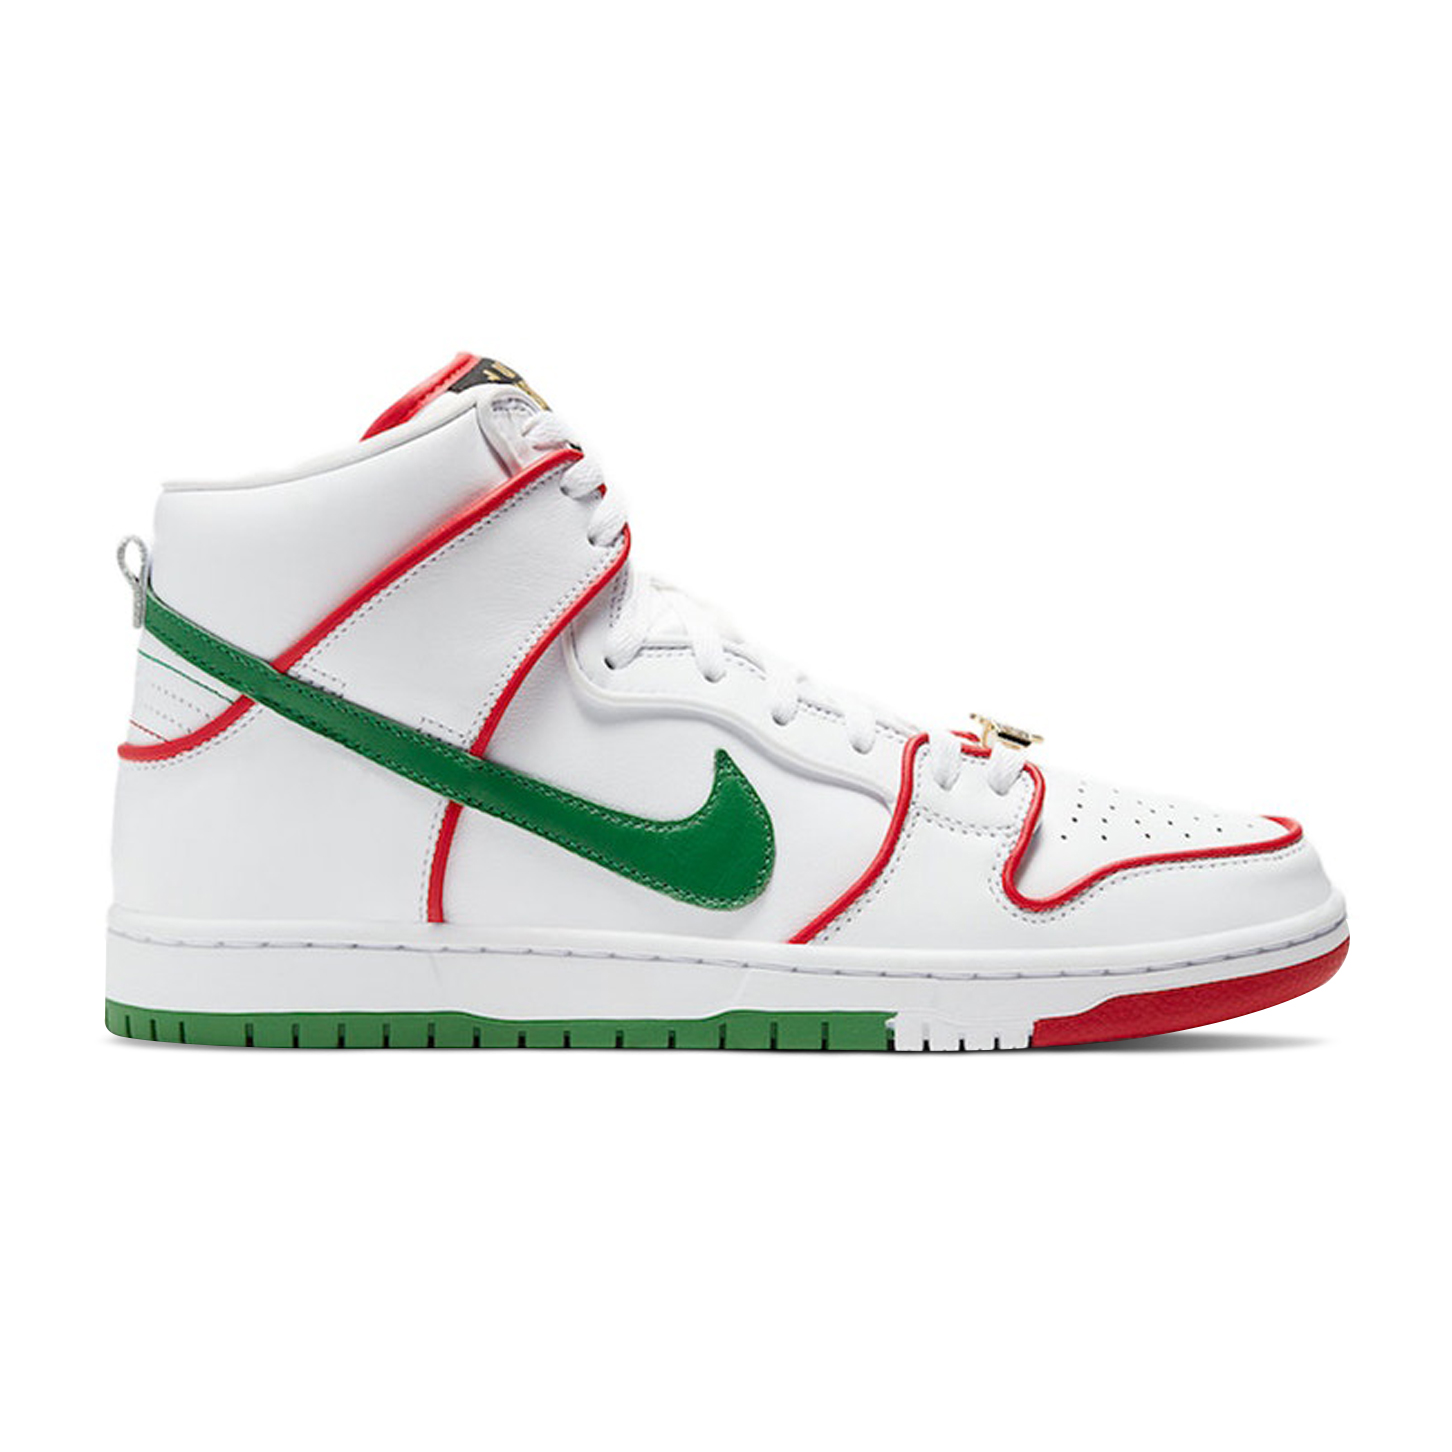 Nike-SB-Dunk-High-Paul-Rodriguez-Mexico